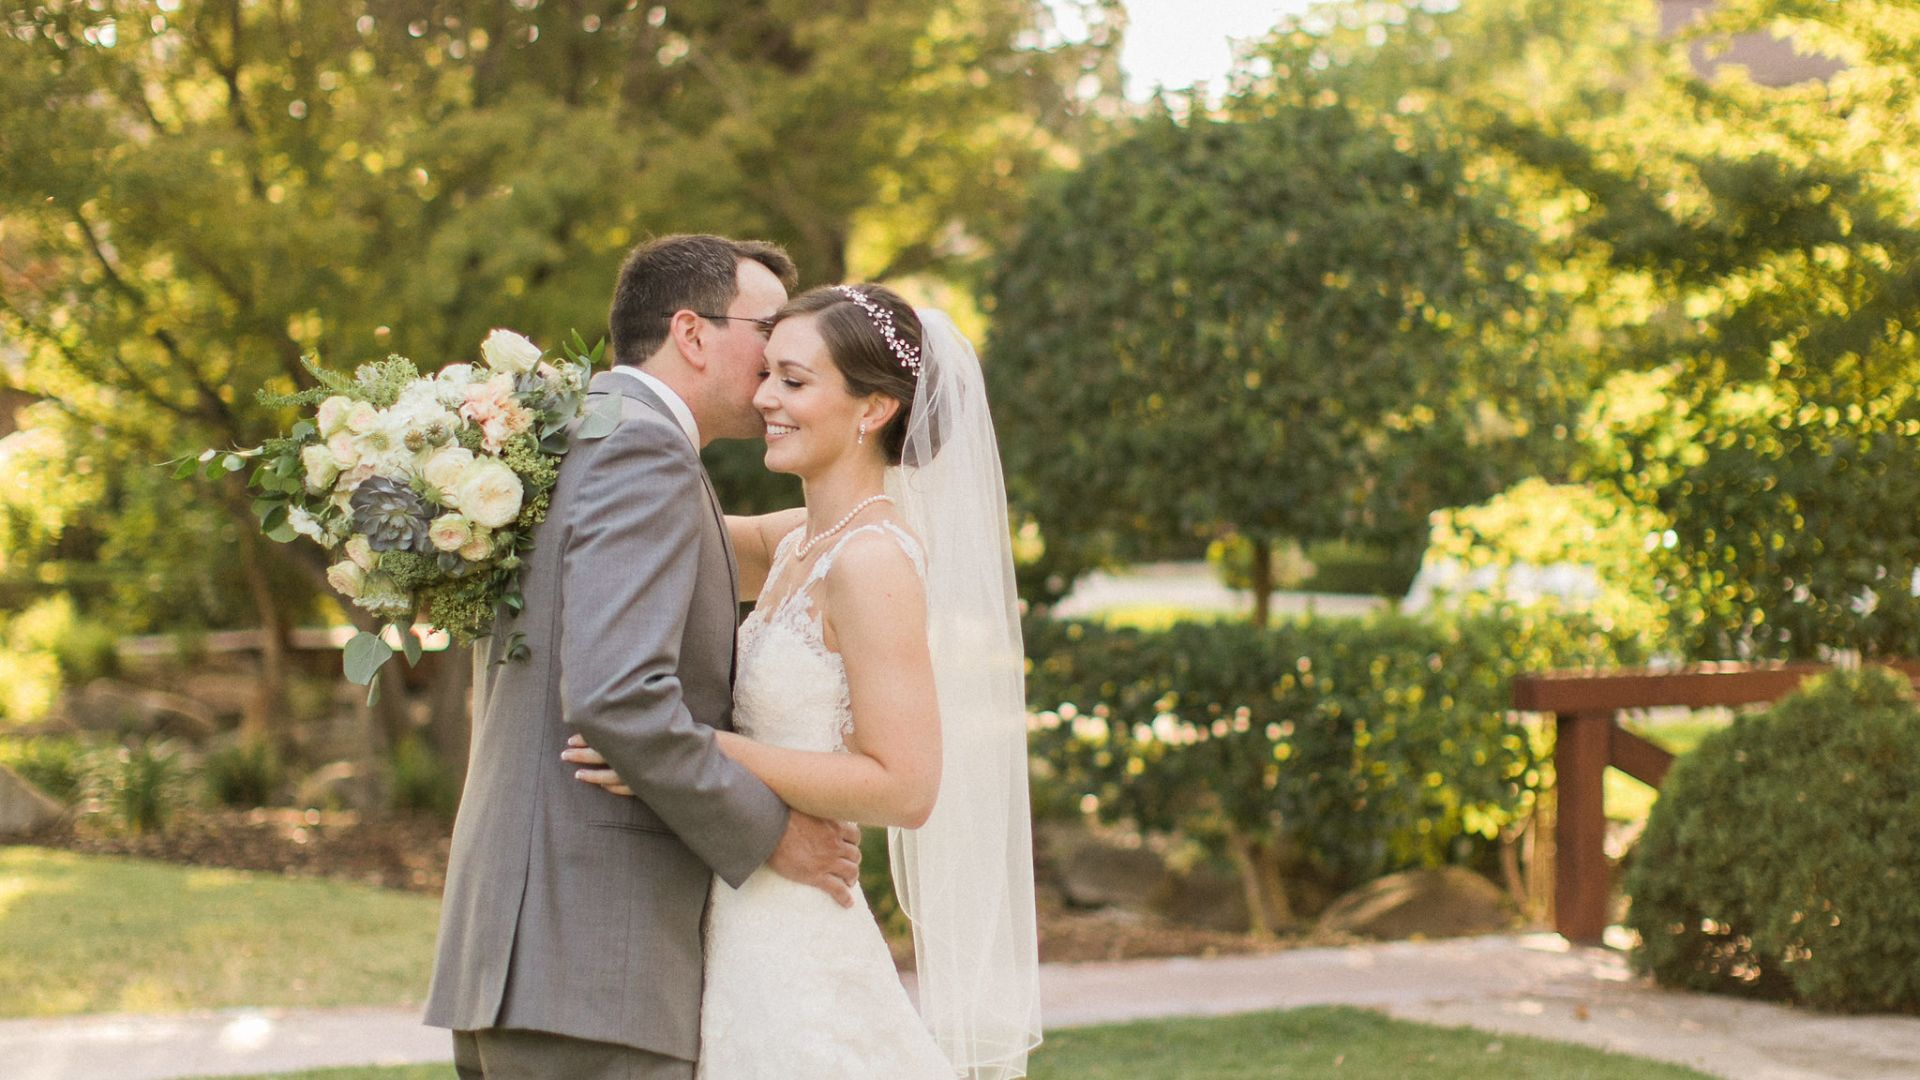 Bride and groom at Paso Robles Inn wedding venue